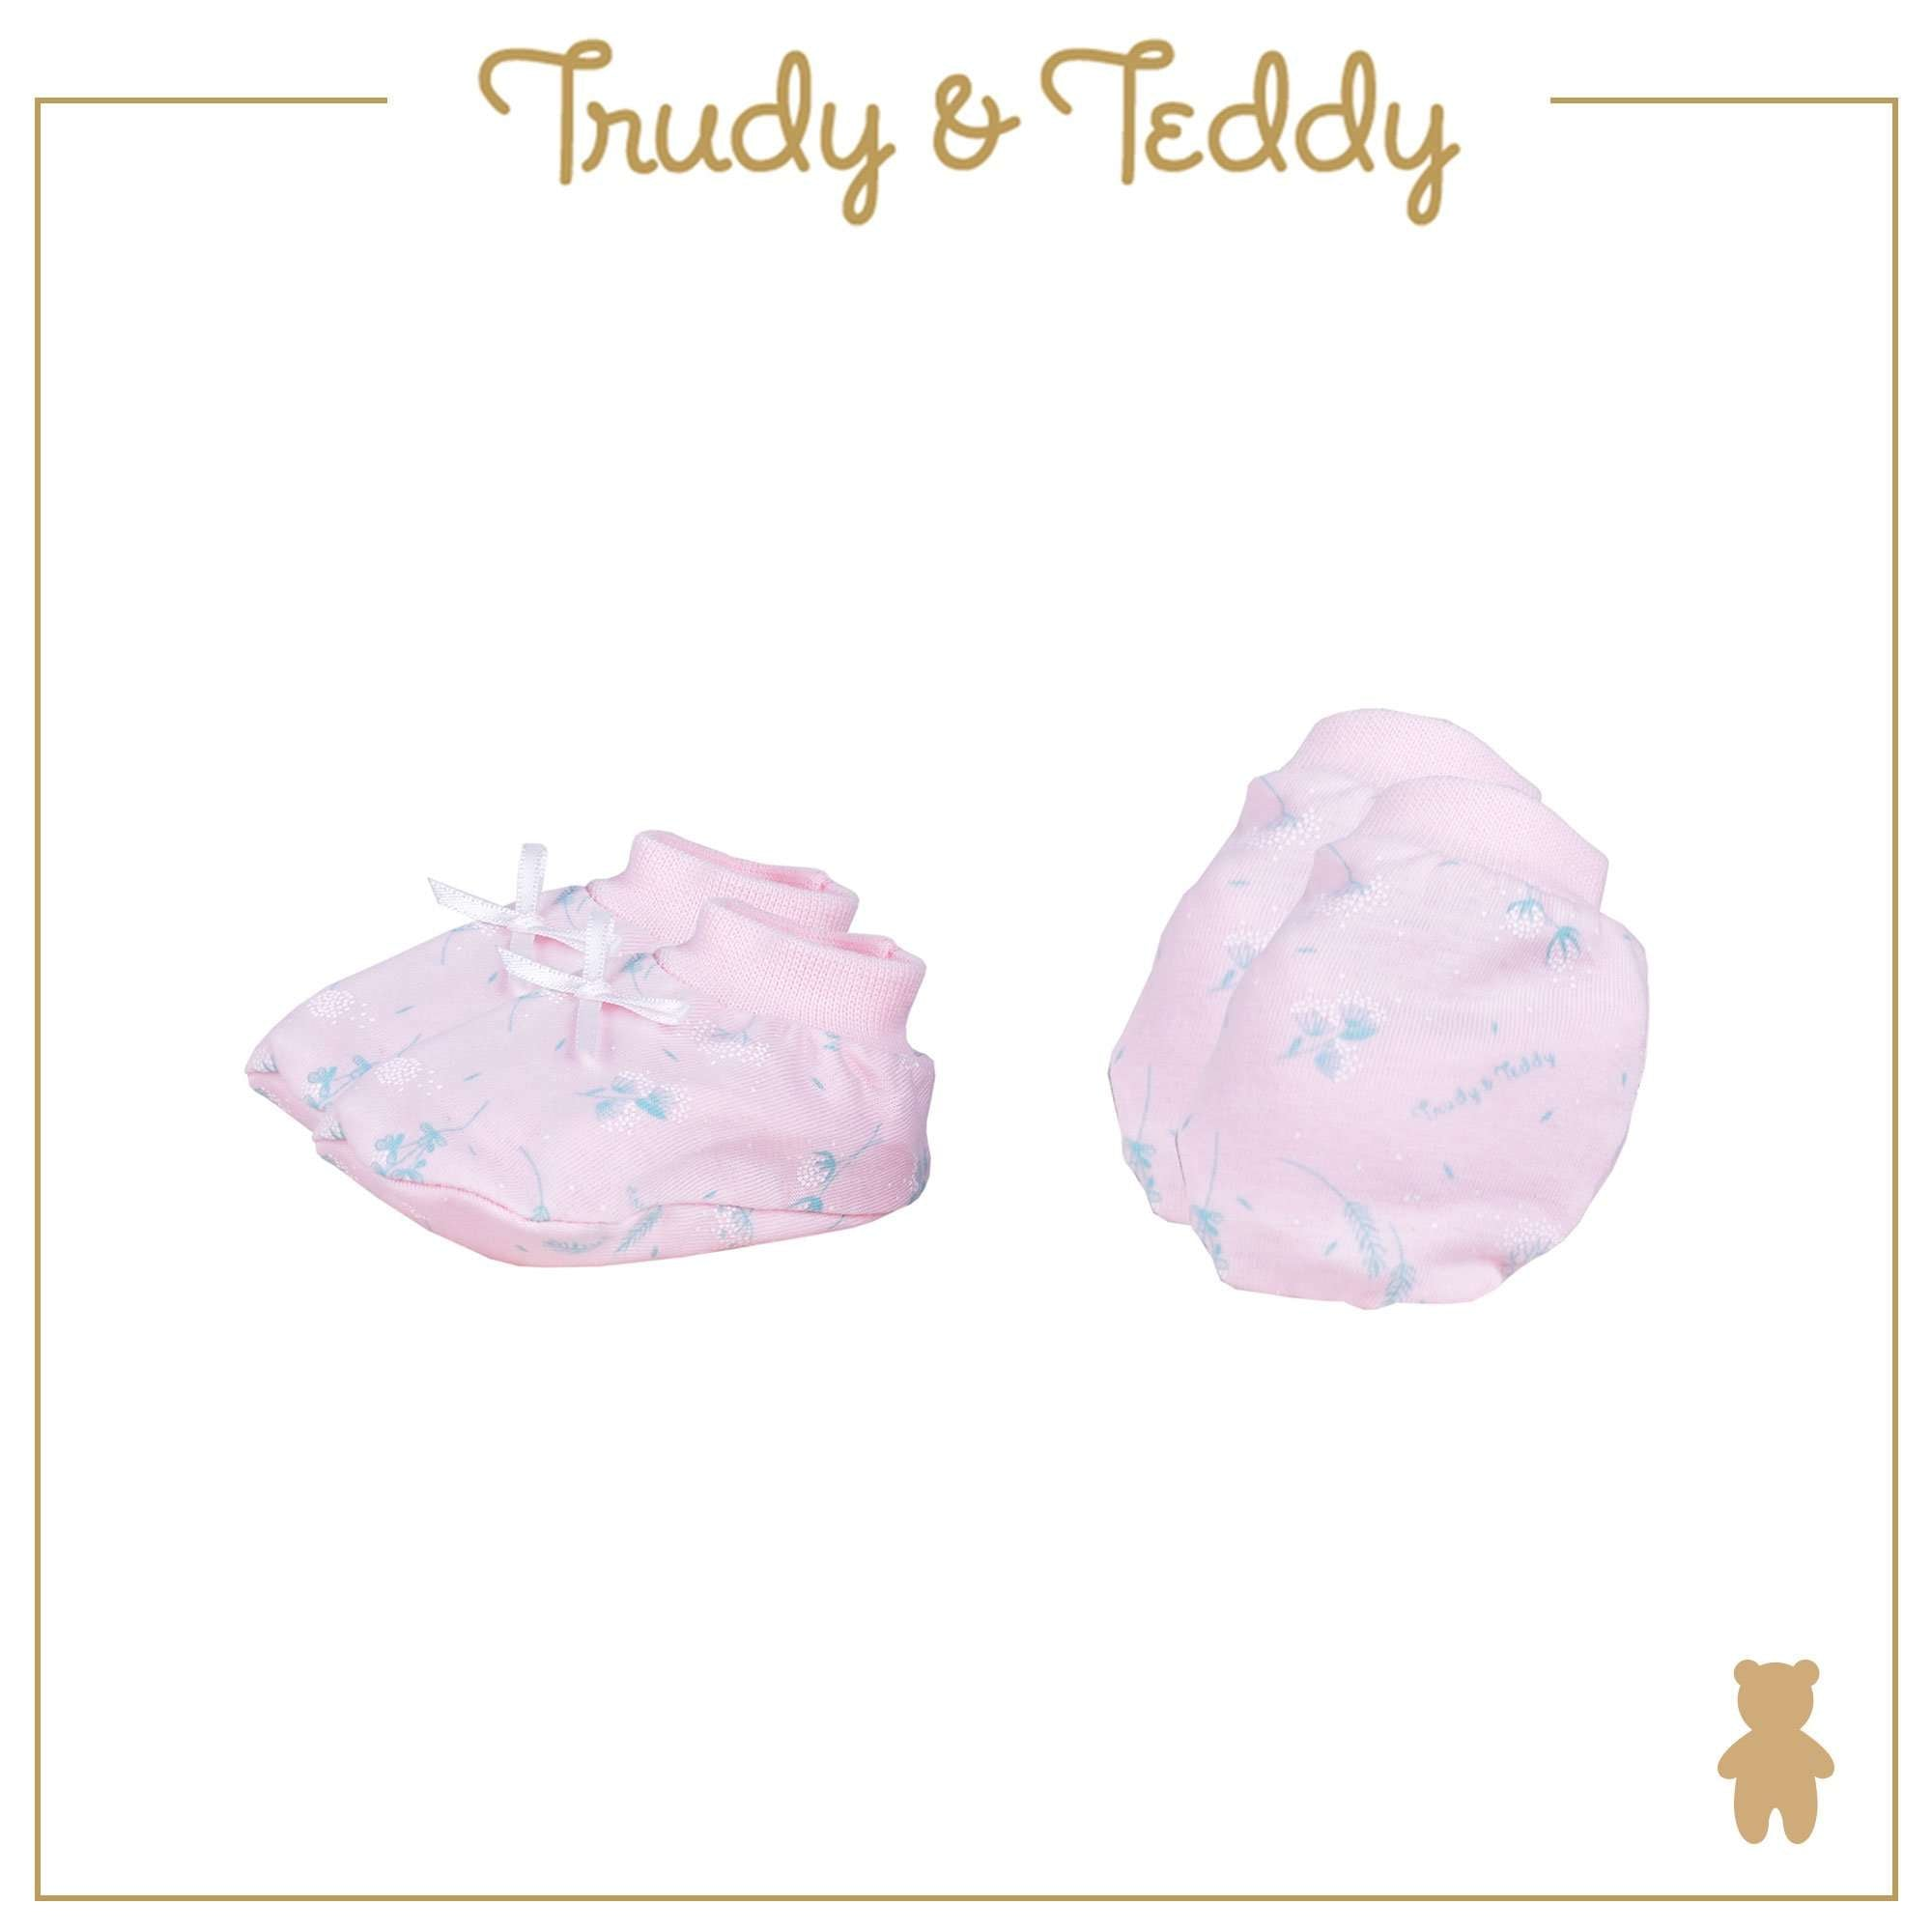 Trudy & Teddy Baby Girl Mitten & Booties 820032-701 : Buy Trudy & Teddy online at CMG.MY